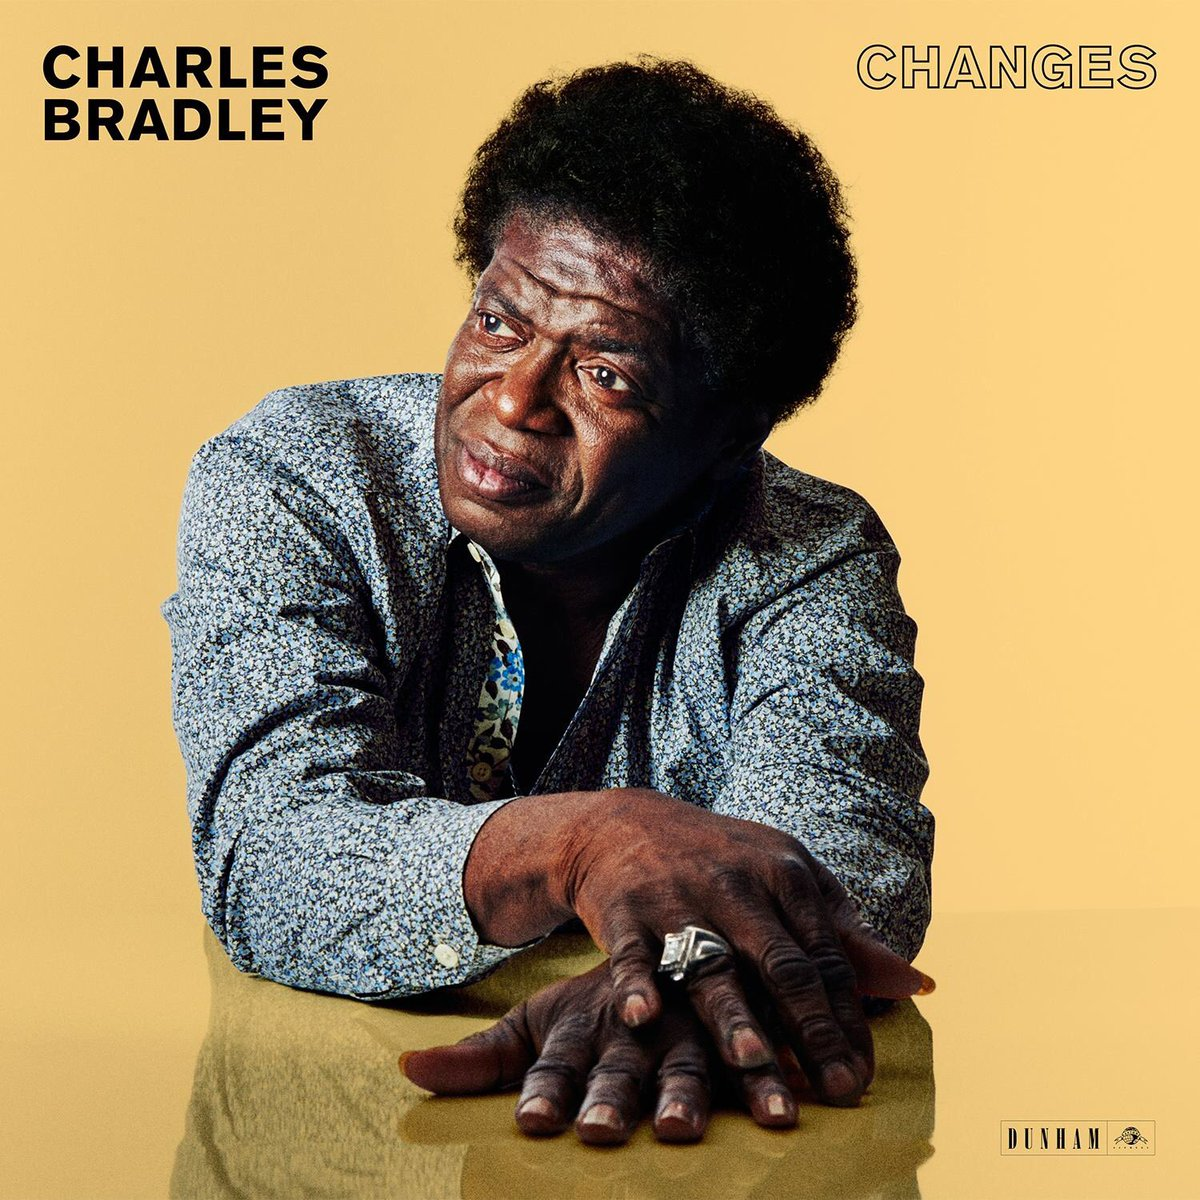 Changes is out April 1st! https://t.co/CcyhzLClKw. RT to win an autographed test pressing #charlesforchange https://t.co/IT5ACqKfwA